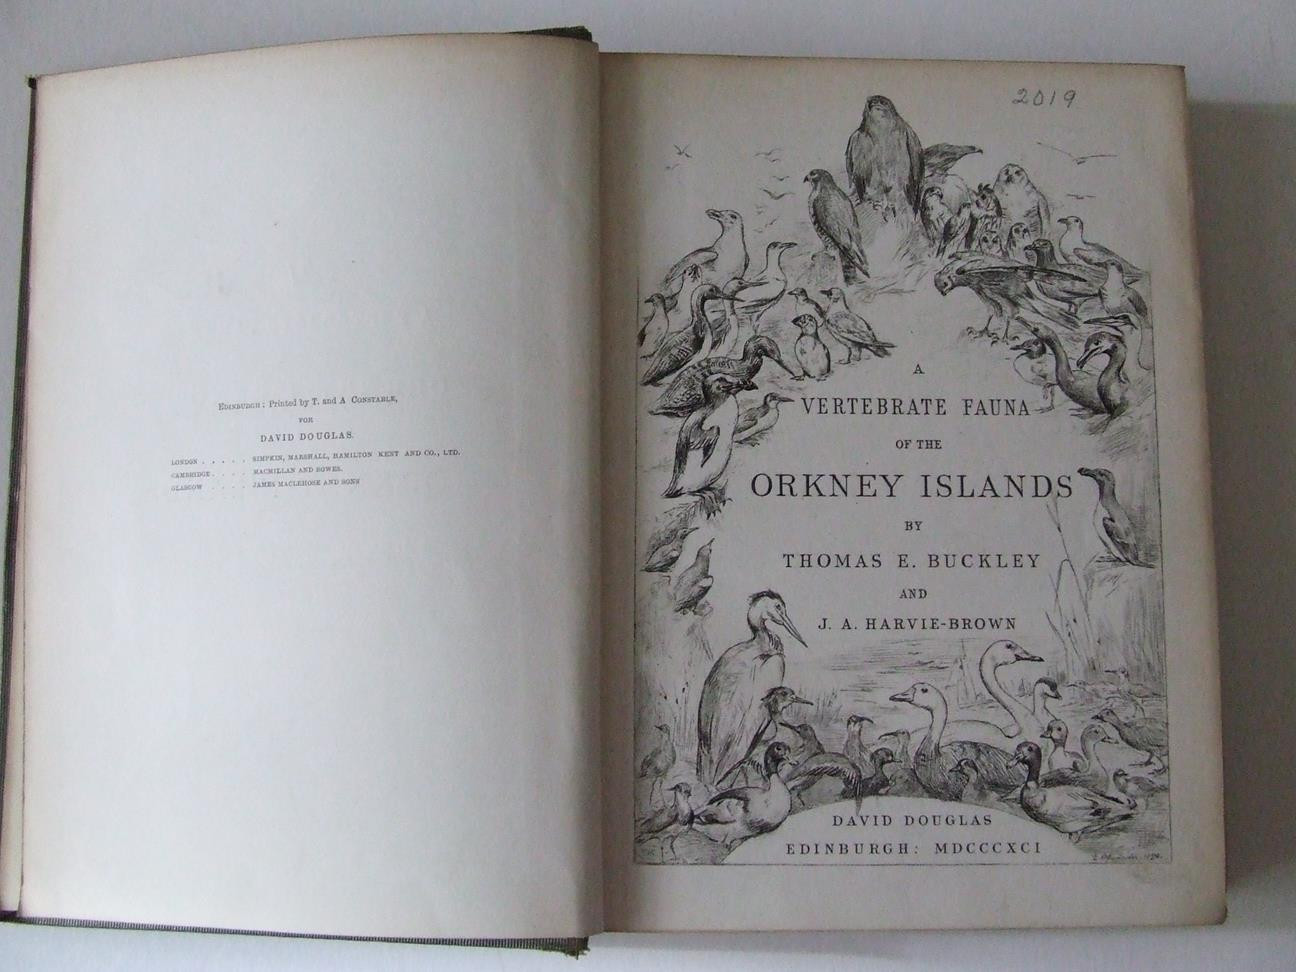 A Vertebrate Fauna of the Orkney Islands